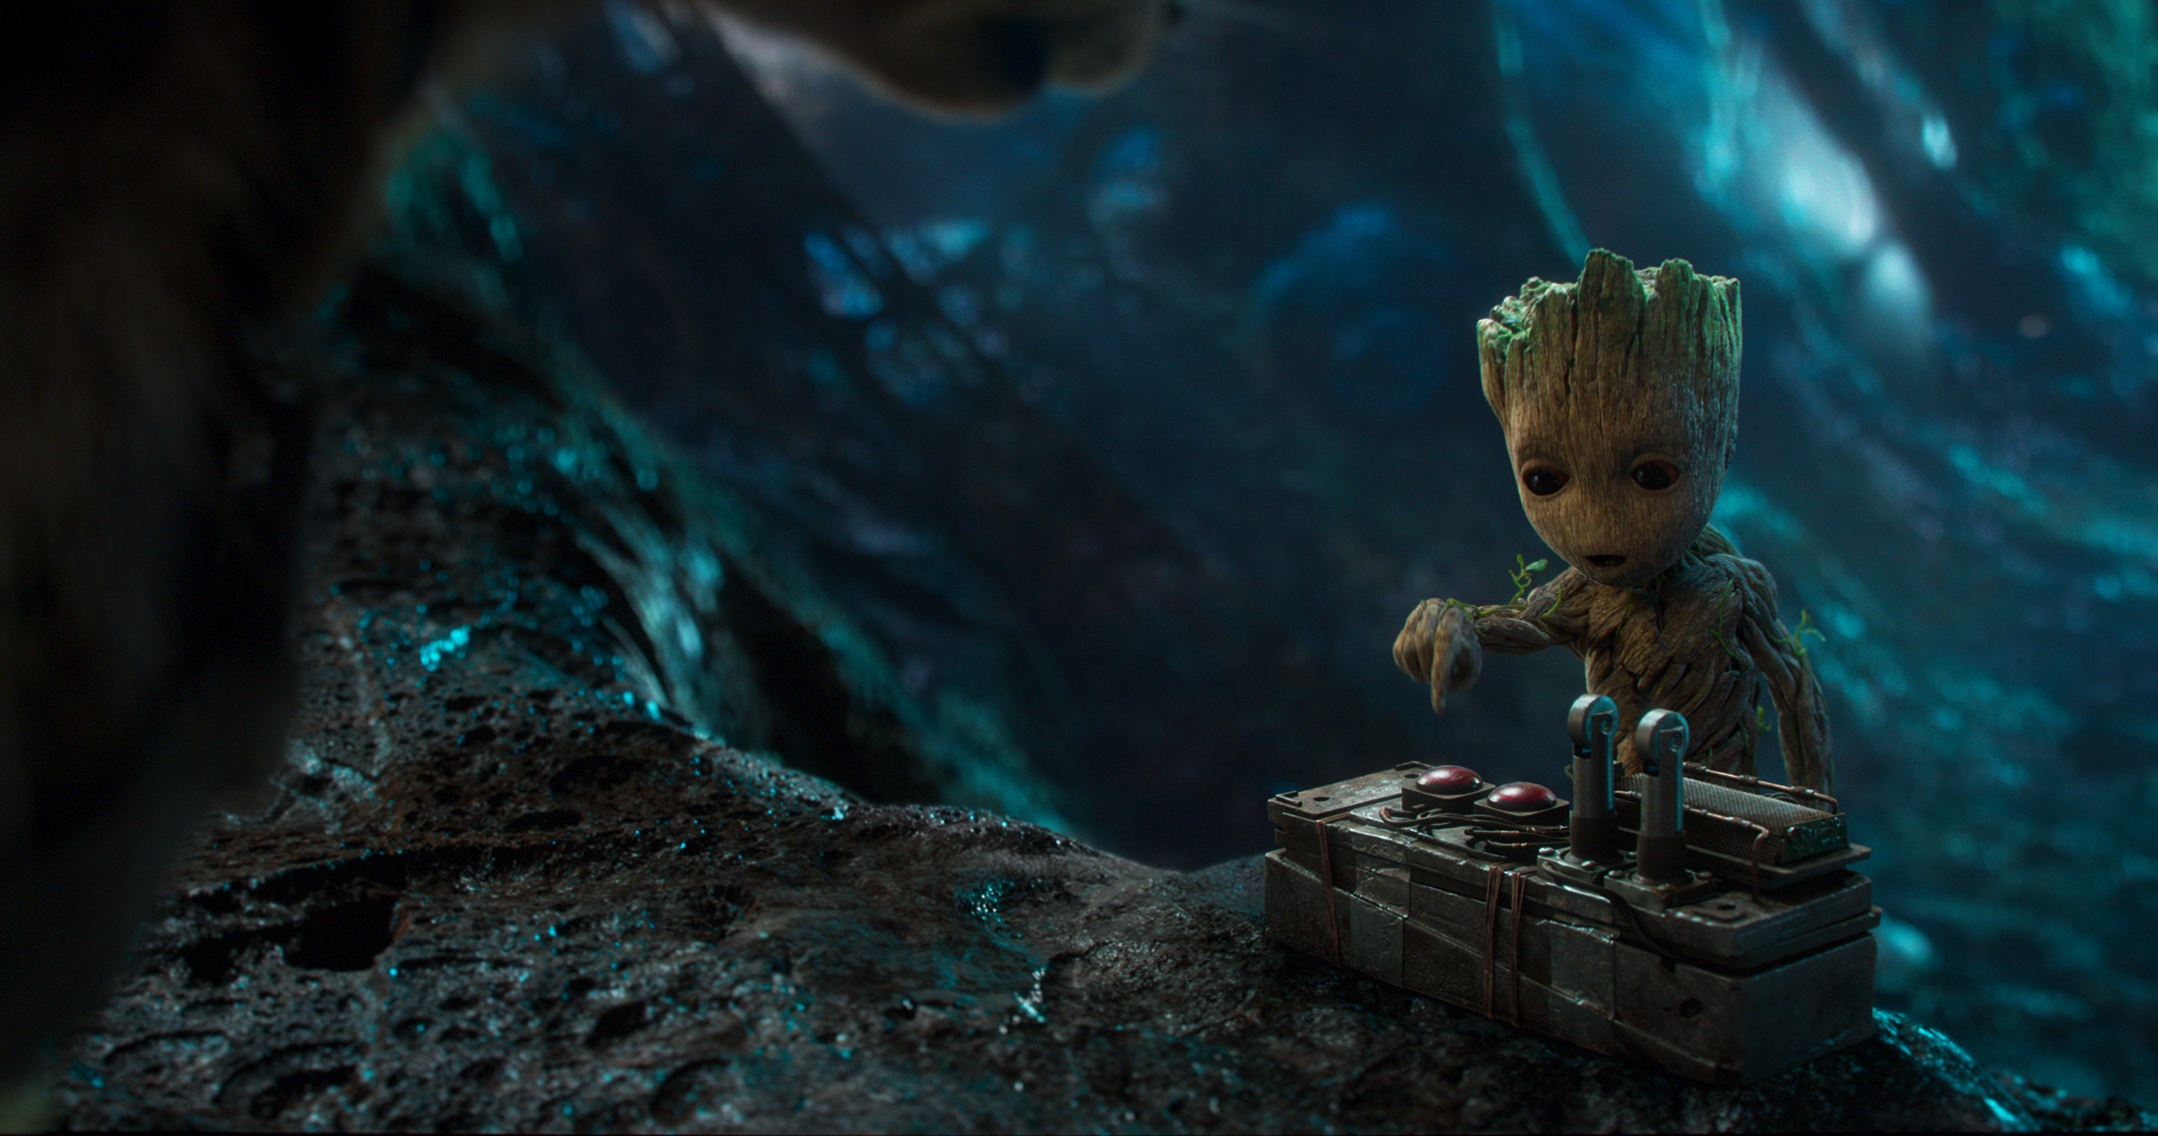 guardians-of-the-galaxy-vol-2-baby-groot.jpeg